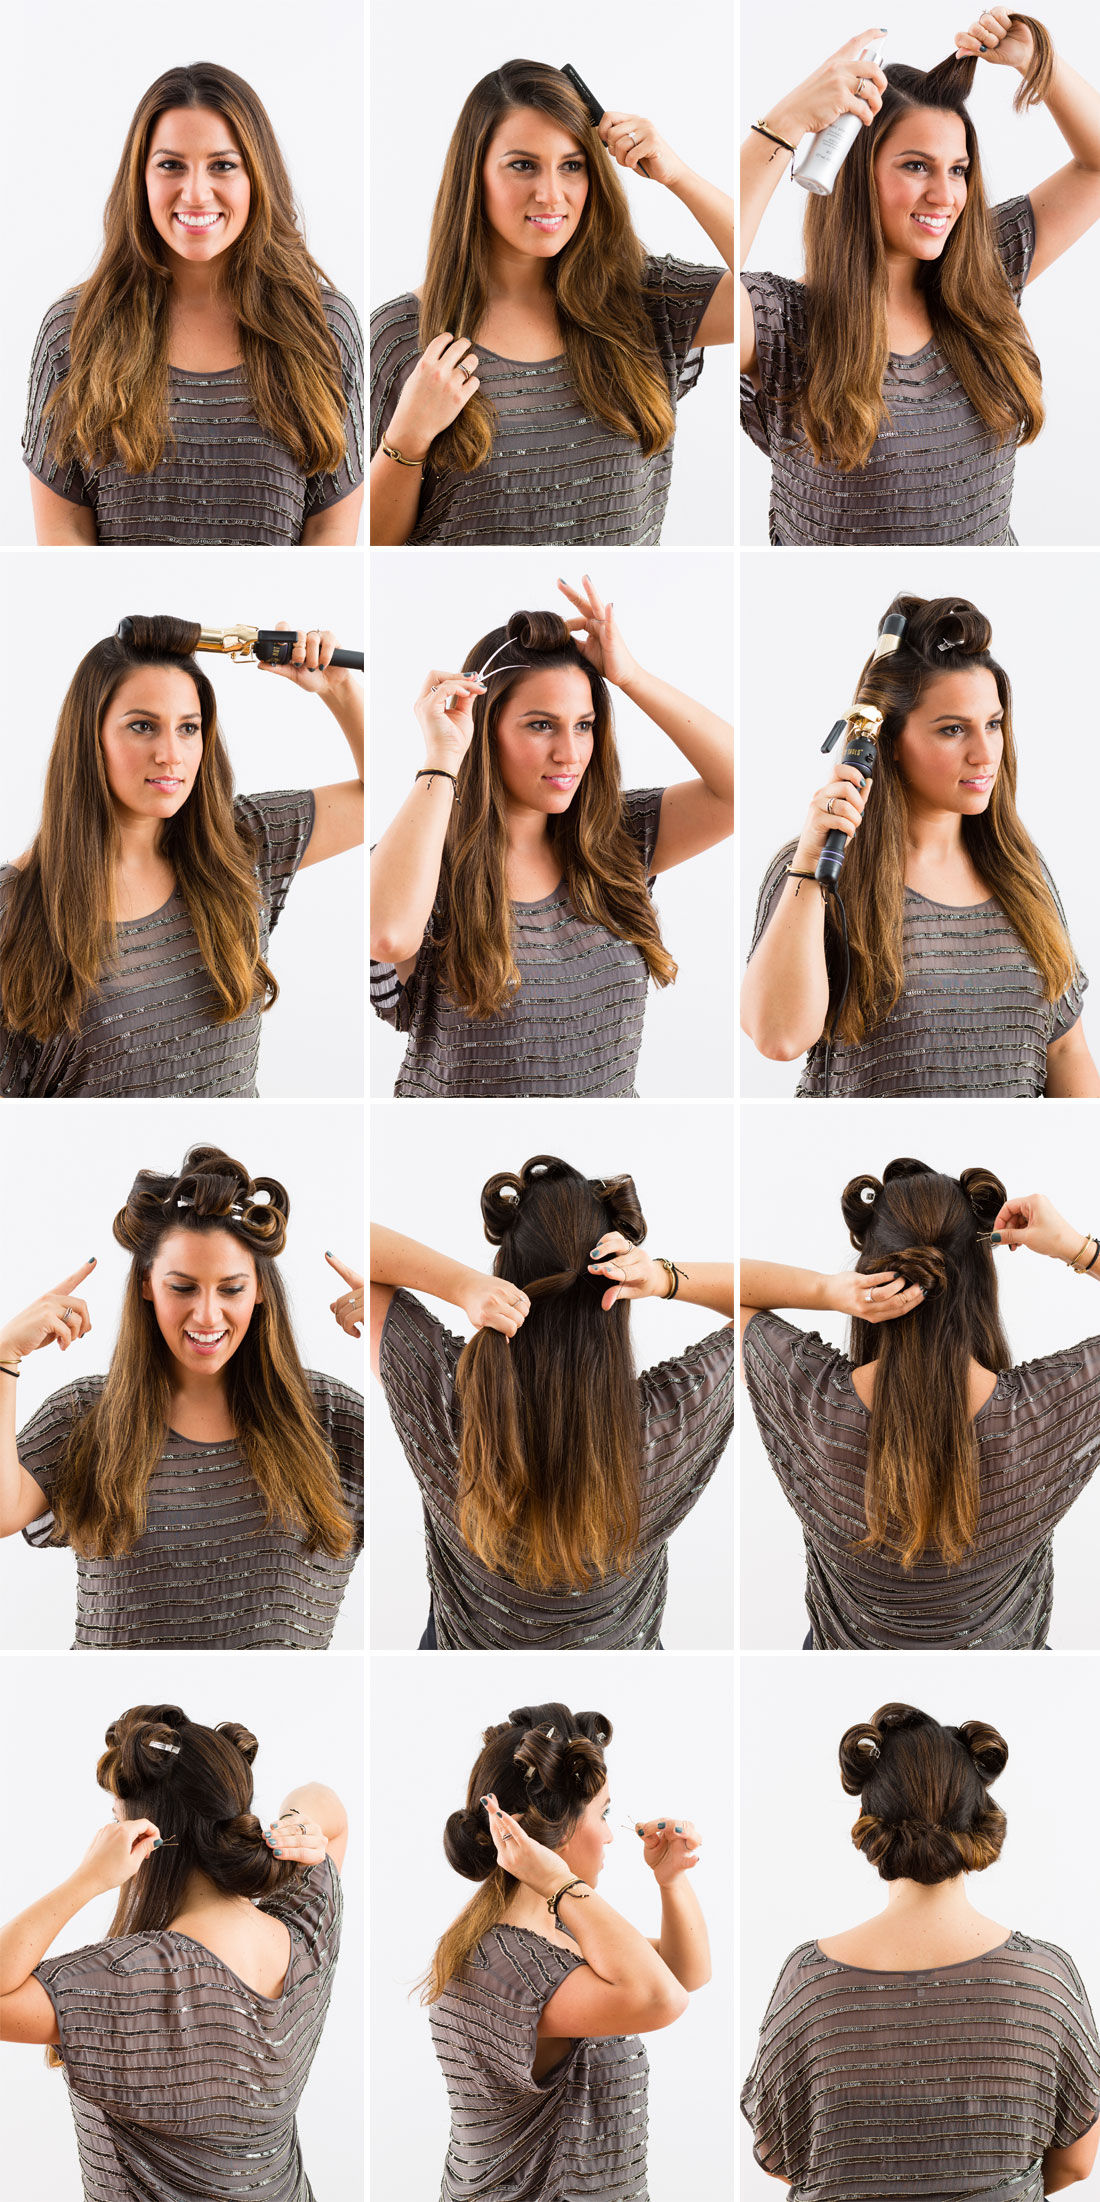 Jessica Alba Updo Hairstyles Jessica Alba Updo Pictures Photos And Images For Facebook